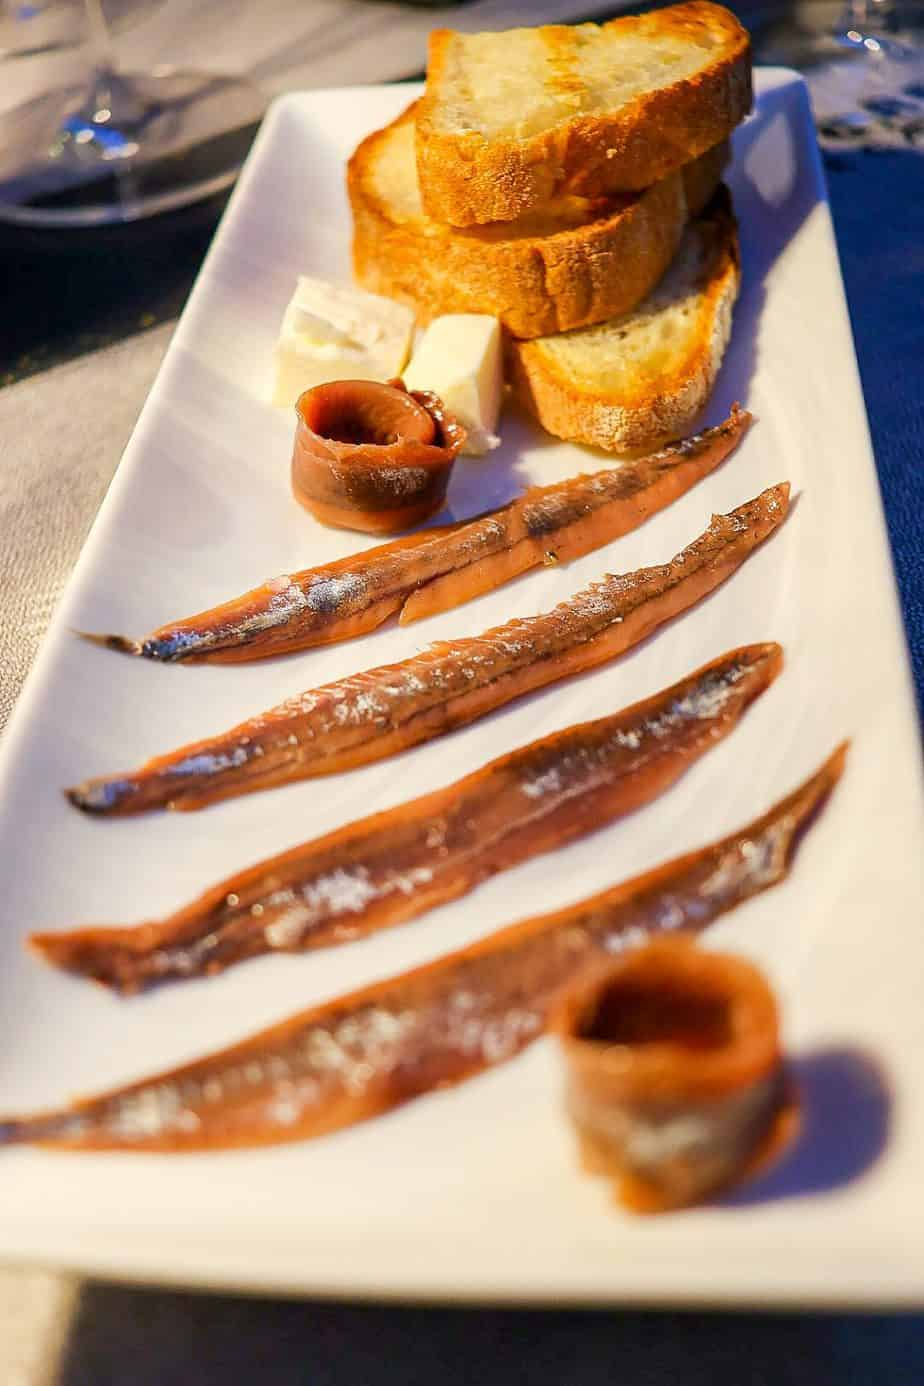 Petricore Enoteca salted anchovy with butter and toast